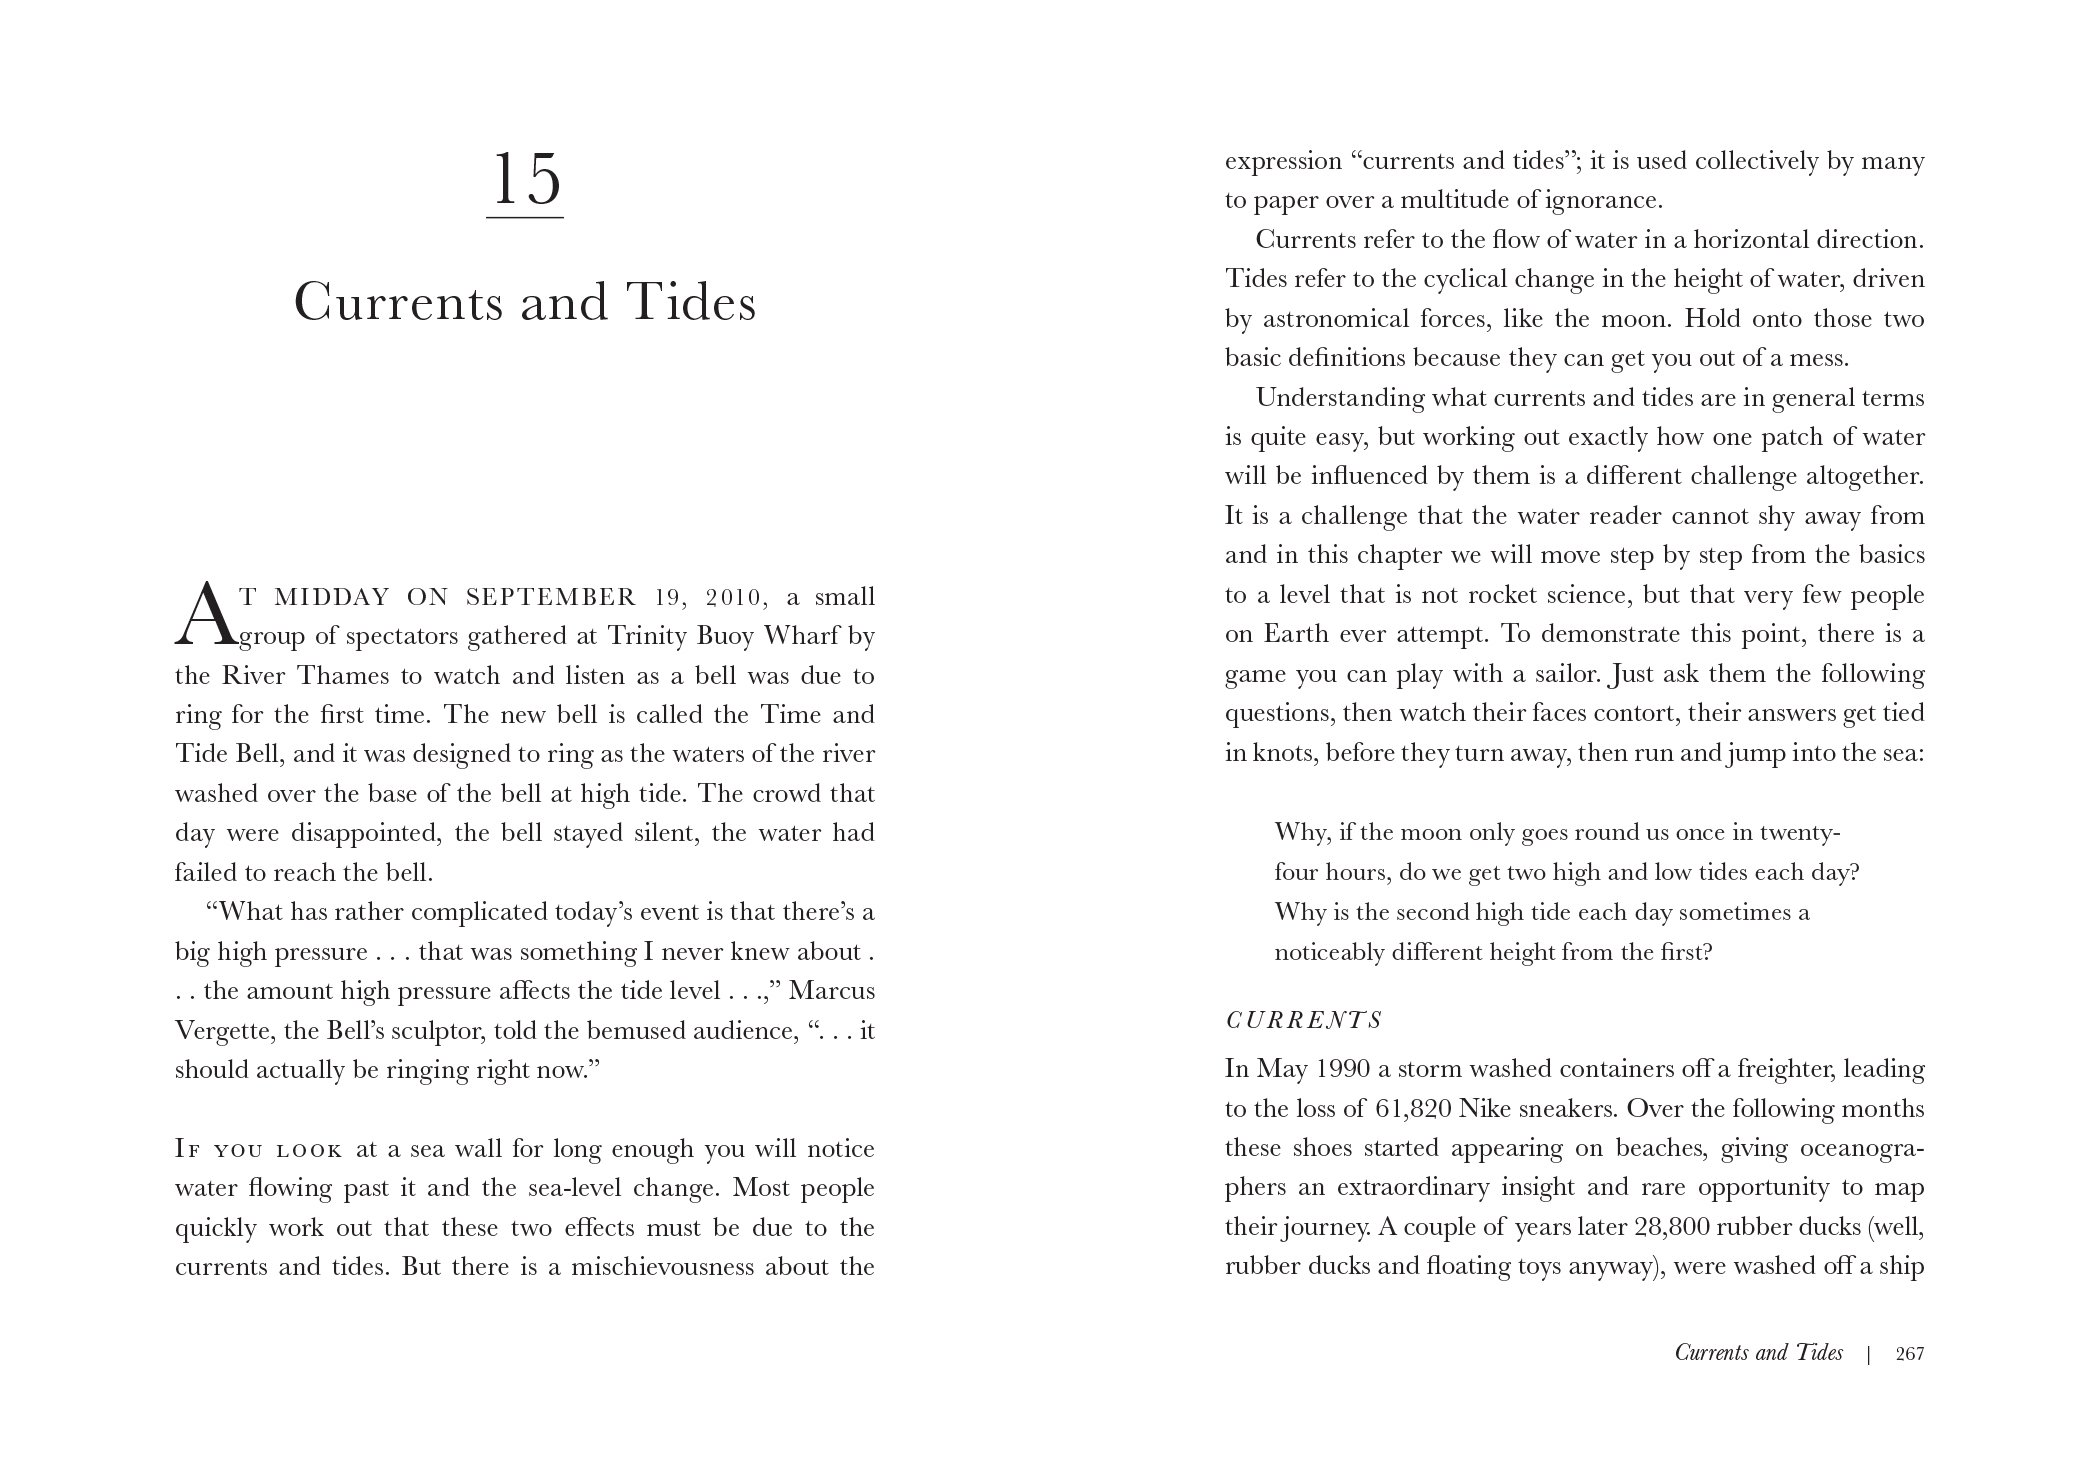 How to read water clues and patterns from puddles to the sea how to read water clues and patterns from puddles to the sea tristan gooley 9781615193585 amazon books fandeluxe Gallery